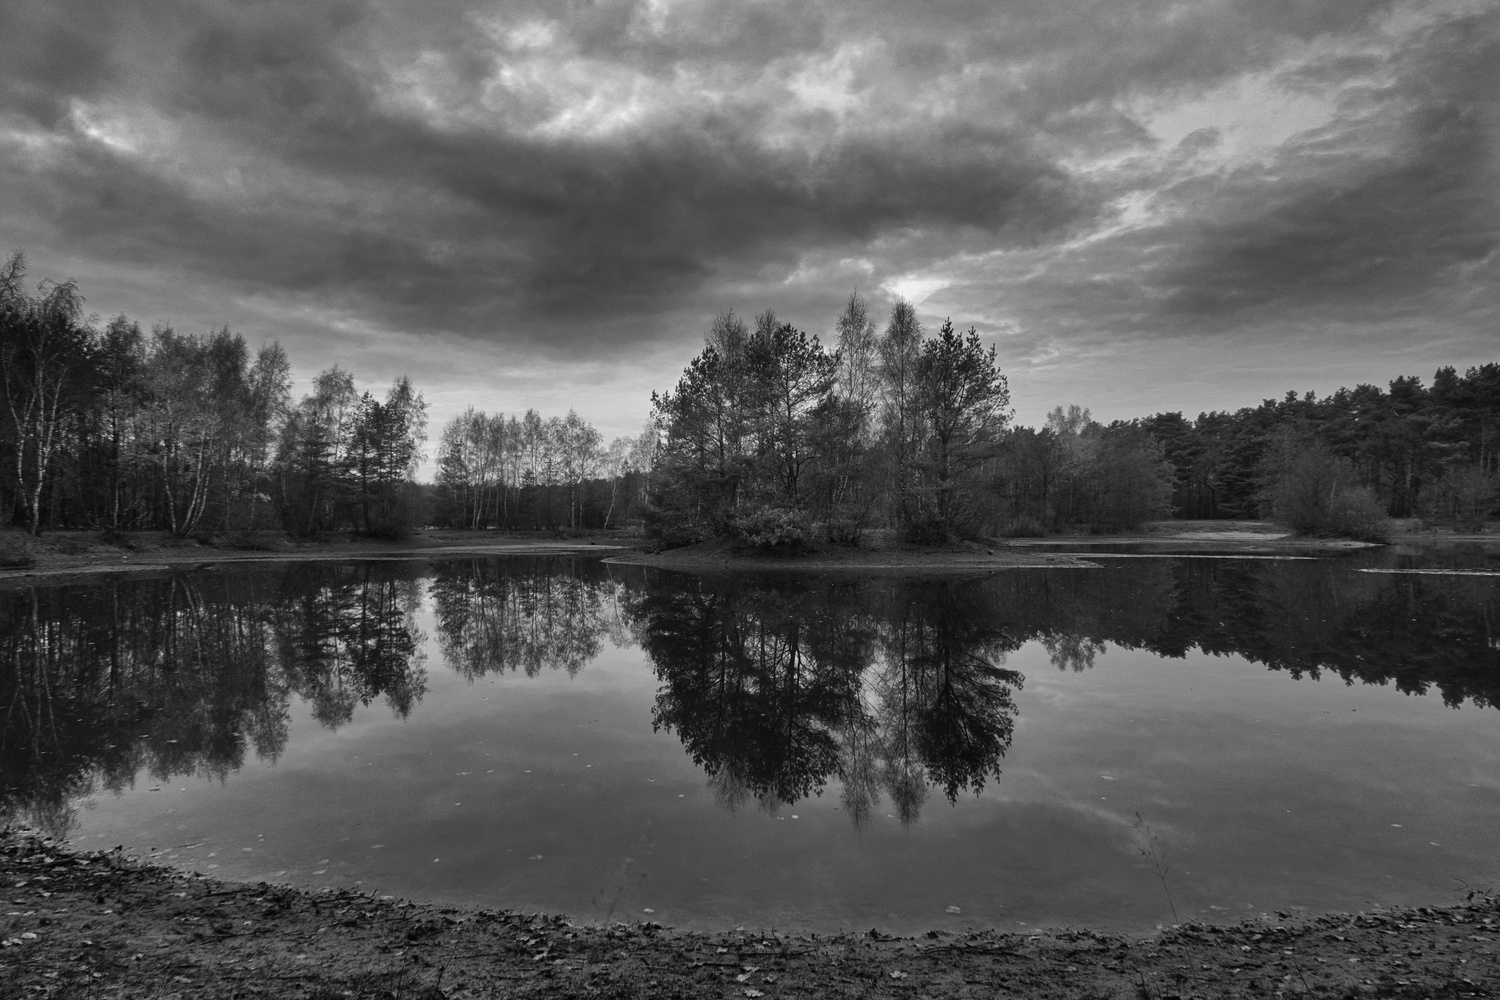 Night is falling over the pond in the woods by Kandid Letters